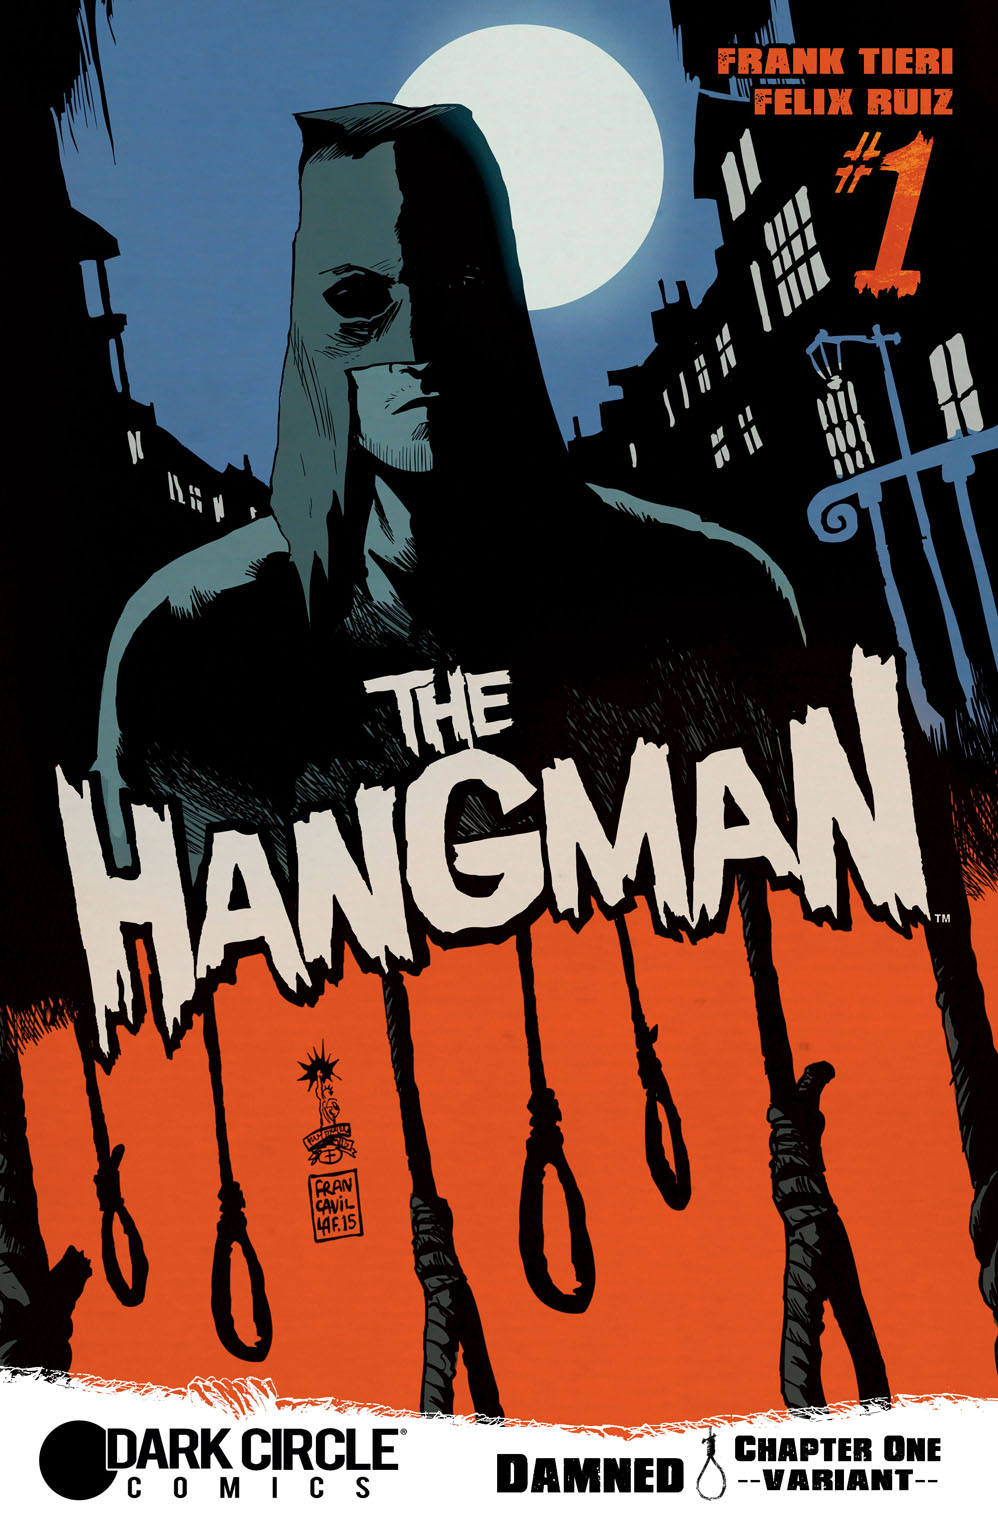 Archie comics archie comics sneak peek of the week major spoilers - Archie Comics Sent Major Spoilers The Cover Images And Solicitation Information For Titles Arriving In October 2015 Hangman 1_bradstreet Hangman 1_ff